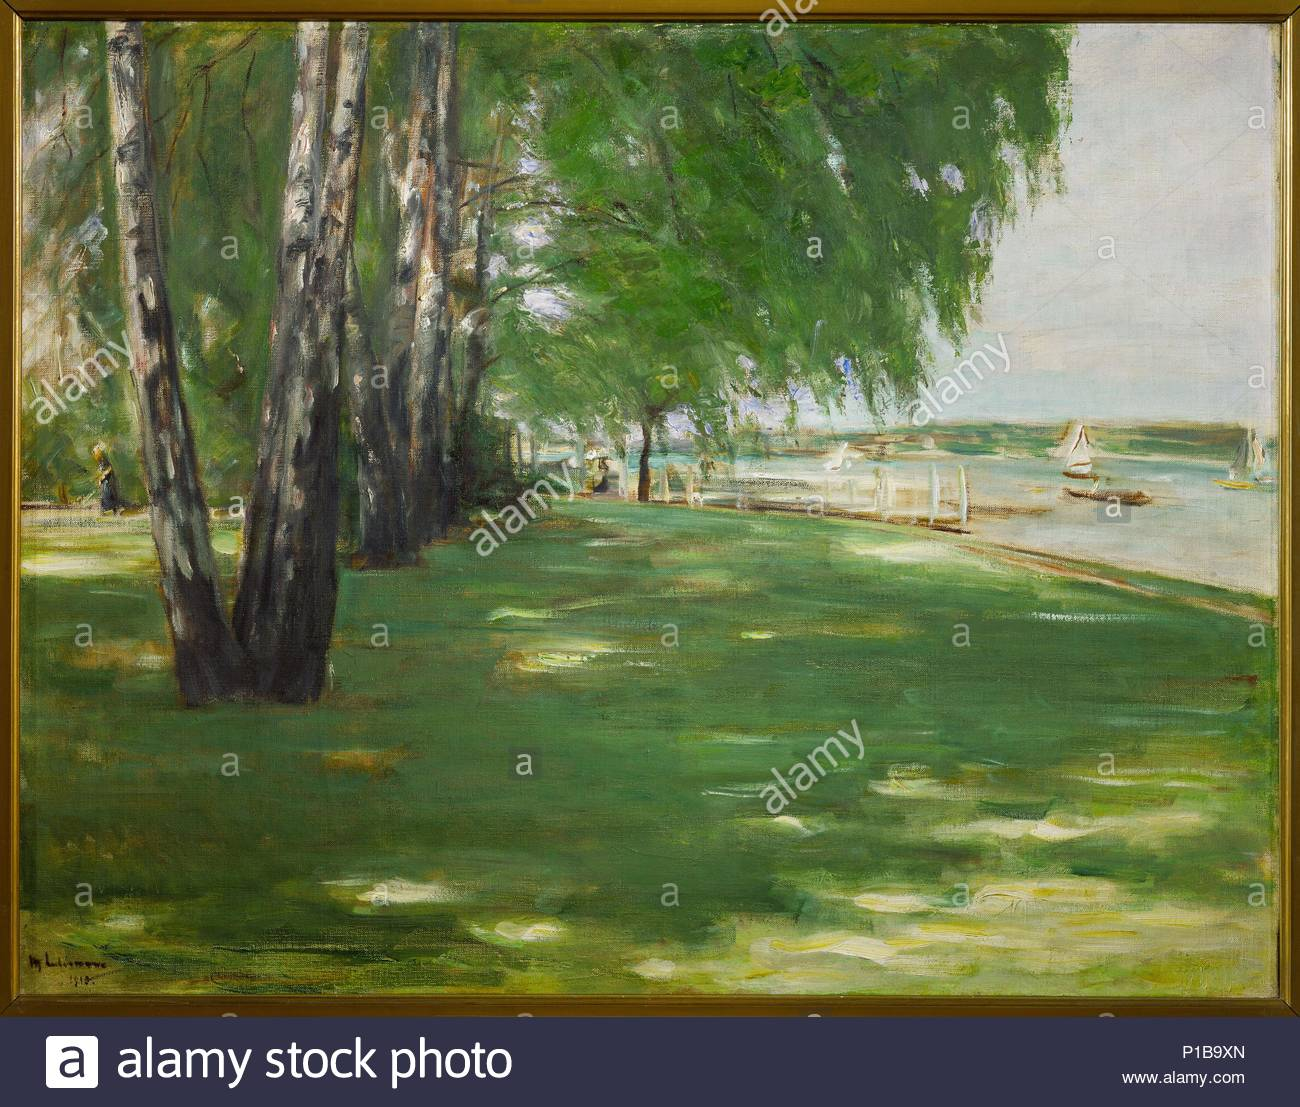 The artist's garden in Wannsee, Berlin; birch trees on the lake shore, 1918. Cabvas, 70 x 90,3 cm Inv. 1600. Author: Max Liebermann (1847-1935). Location: Kunsthalle, Hamburg, Germany. - Stock Image